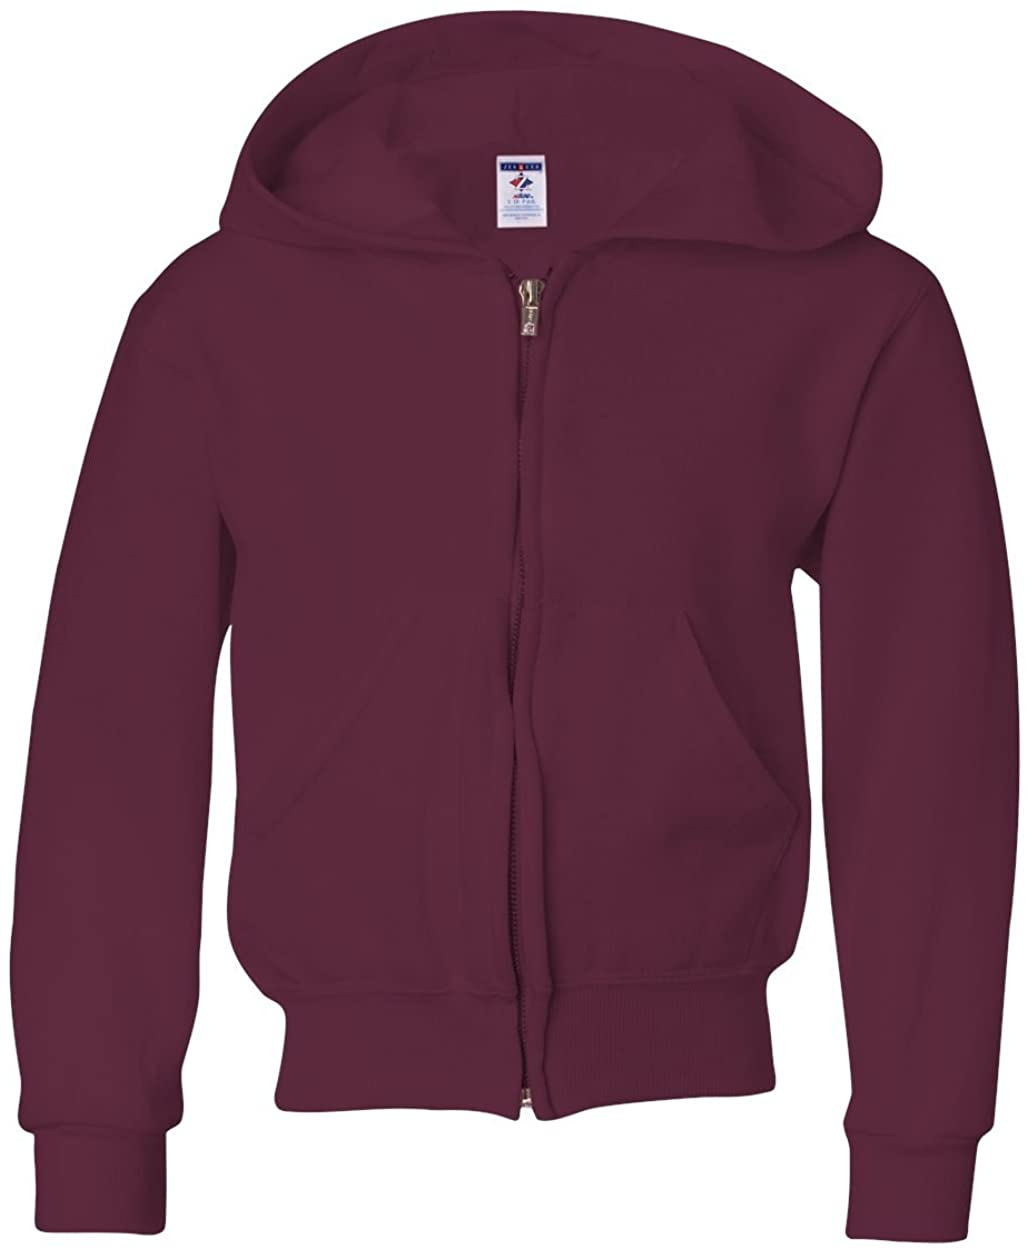 Jerzees Youth NuBlend Full-Zip Hooded Sweatshirt, Maroon, Medium